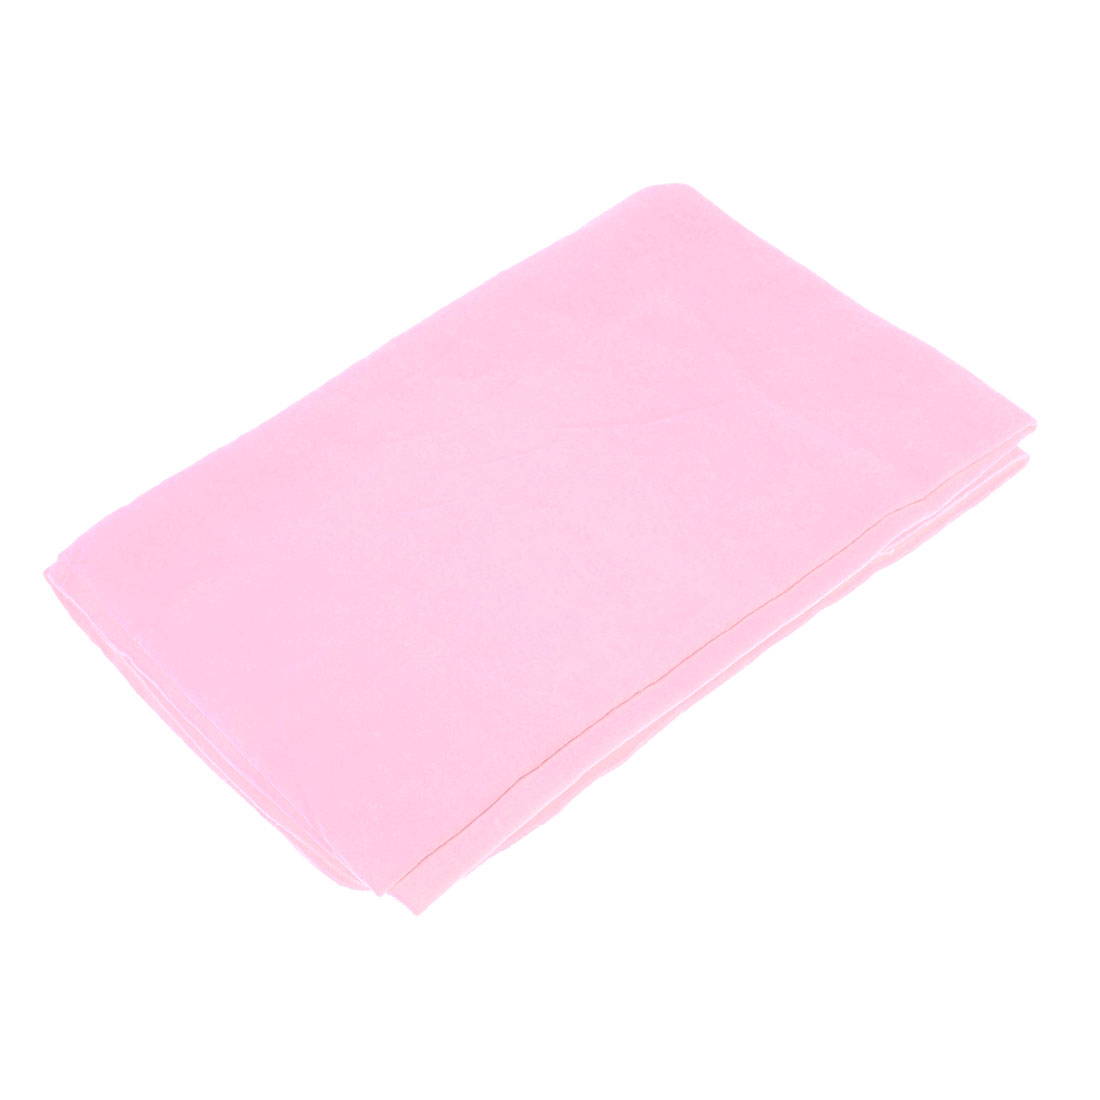 Vehicles Car Pink Soft Synthetic Chamois Cleaning Cham Towel 43cm x 32cm